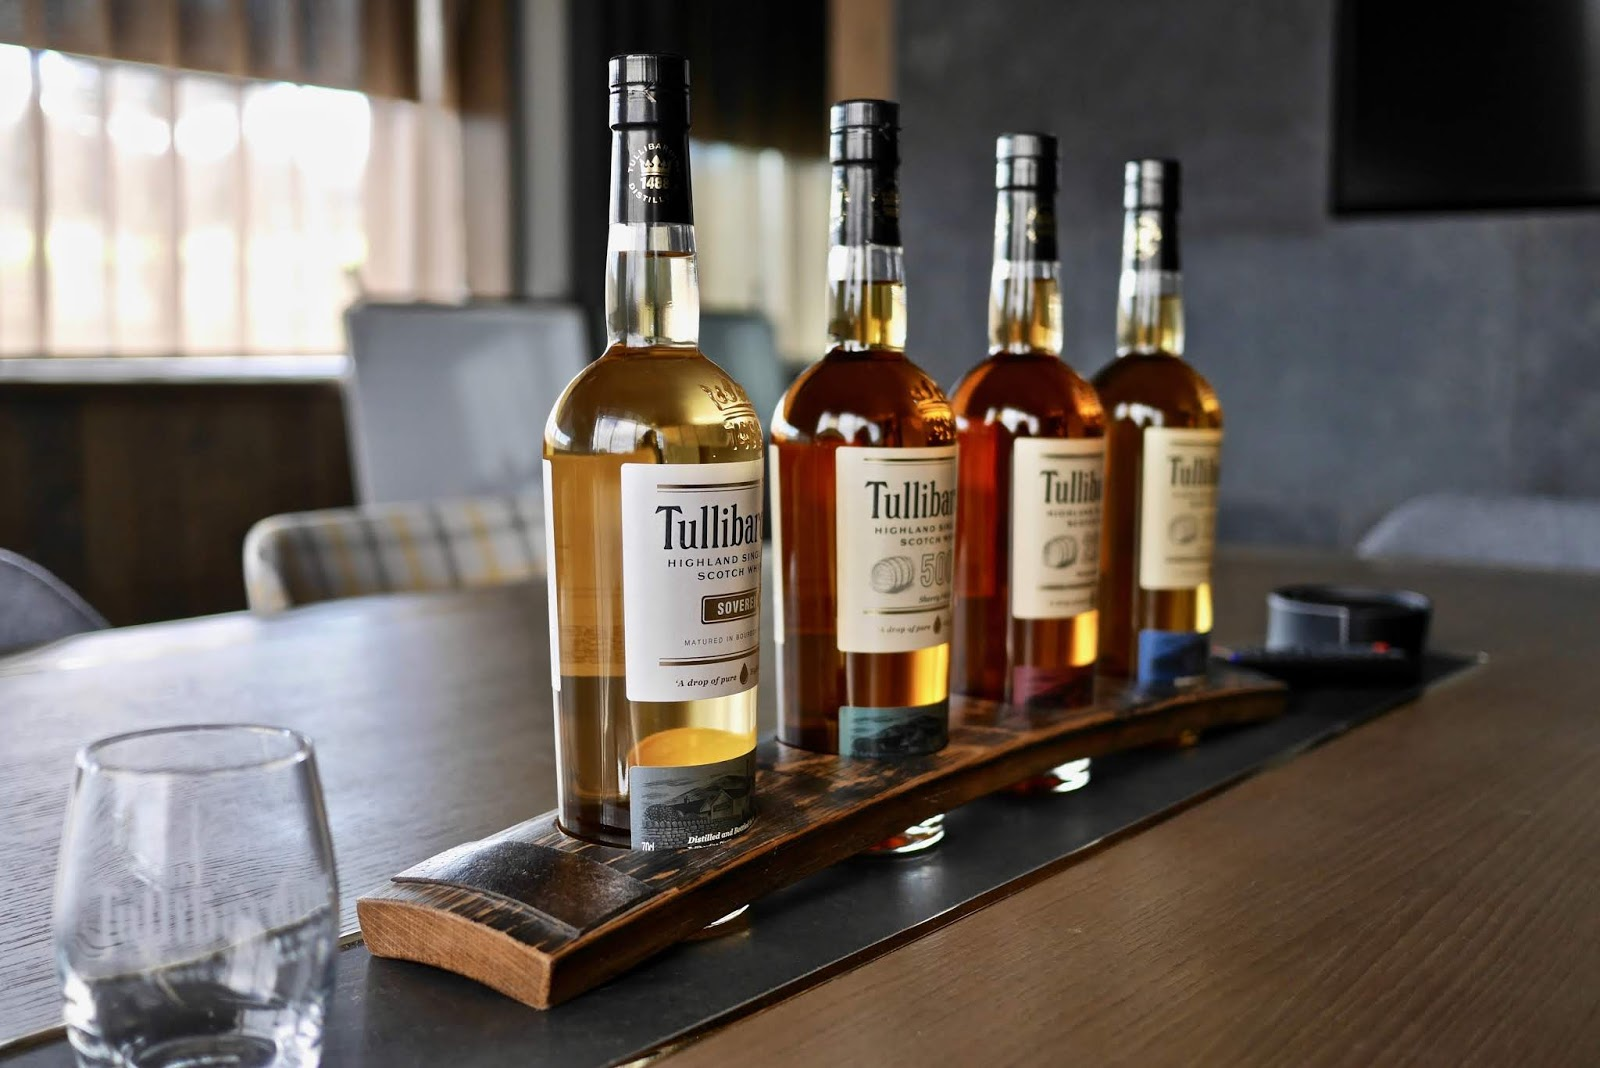 Tullibardine Whisky core range of whisky including the wood finish